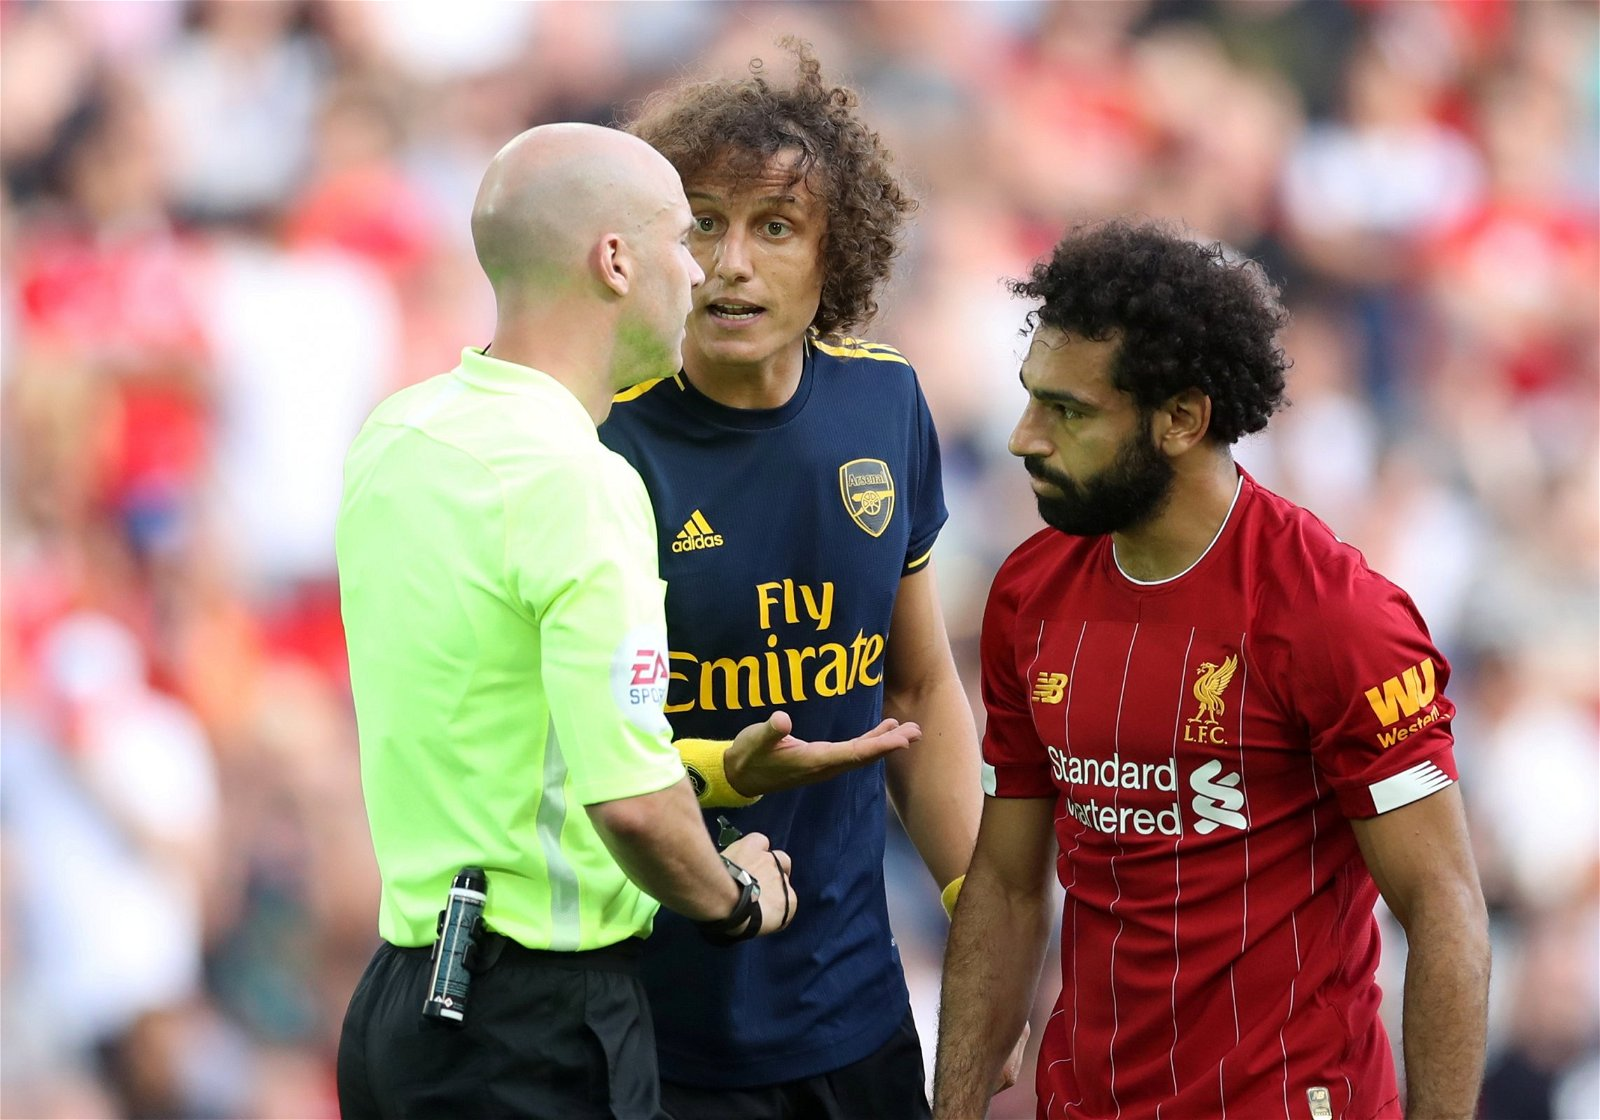 David Luiz gets a word from the referee - [Image] - The picture of David Luiz that perfectly sums up his evening at Anfield